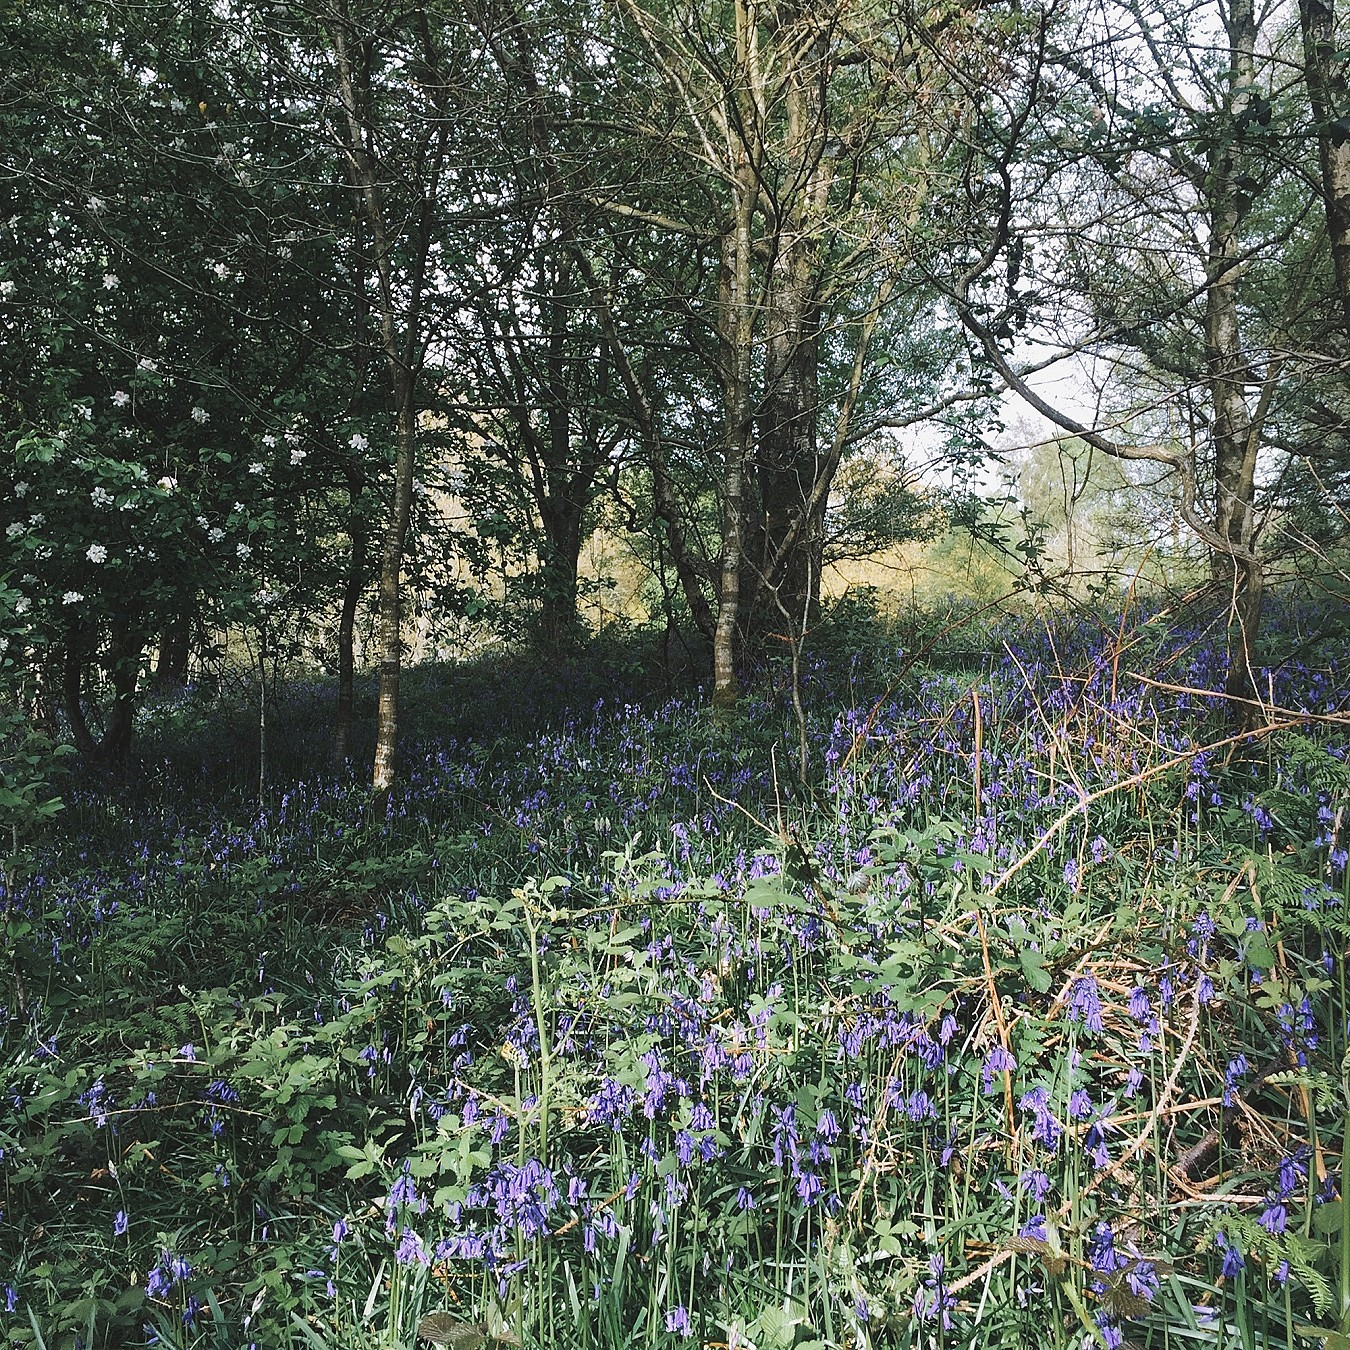 Bluebells in a forest, bathed in a shaft of sunlight.